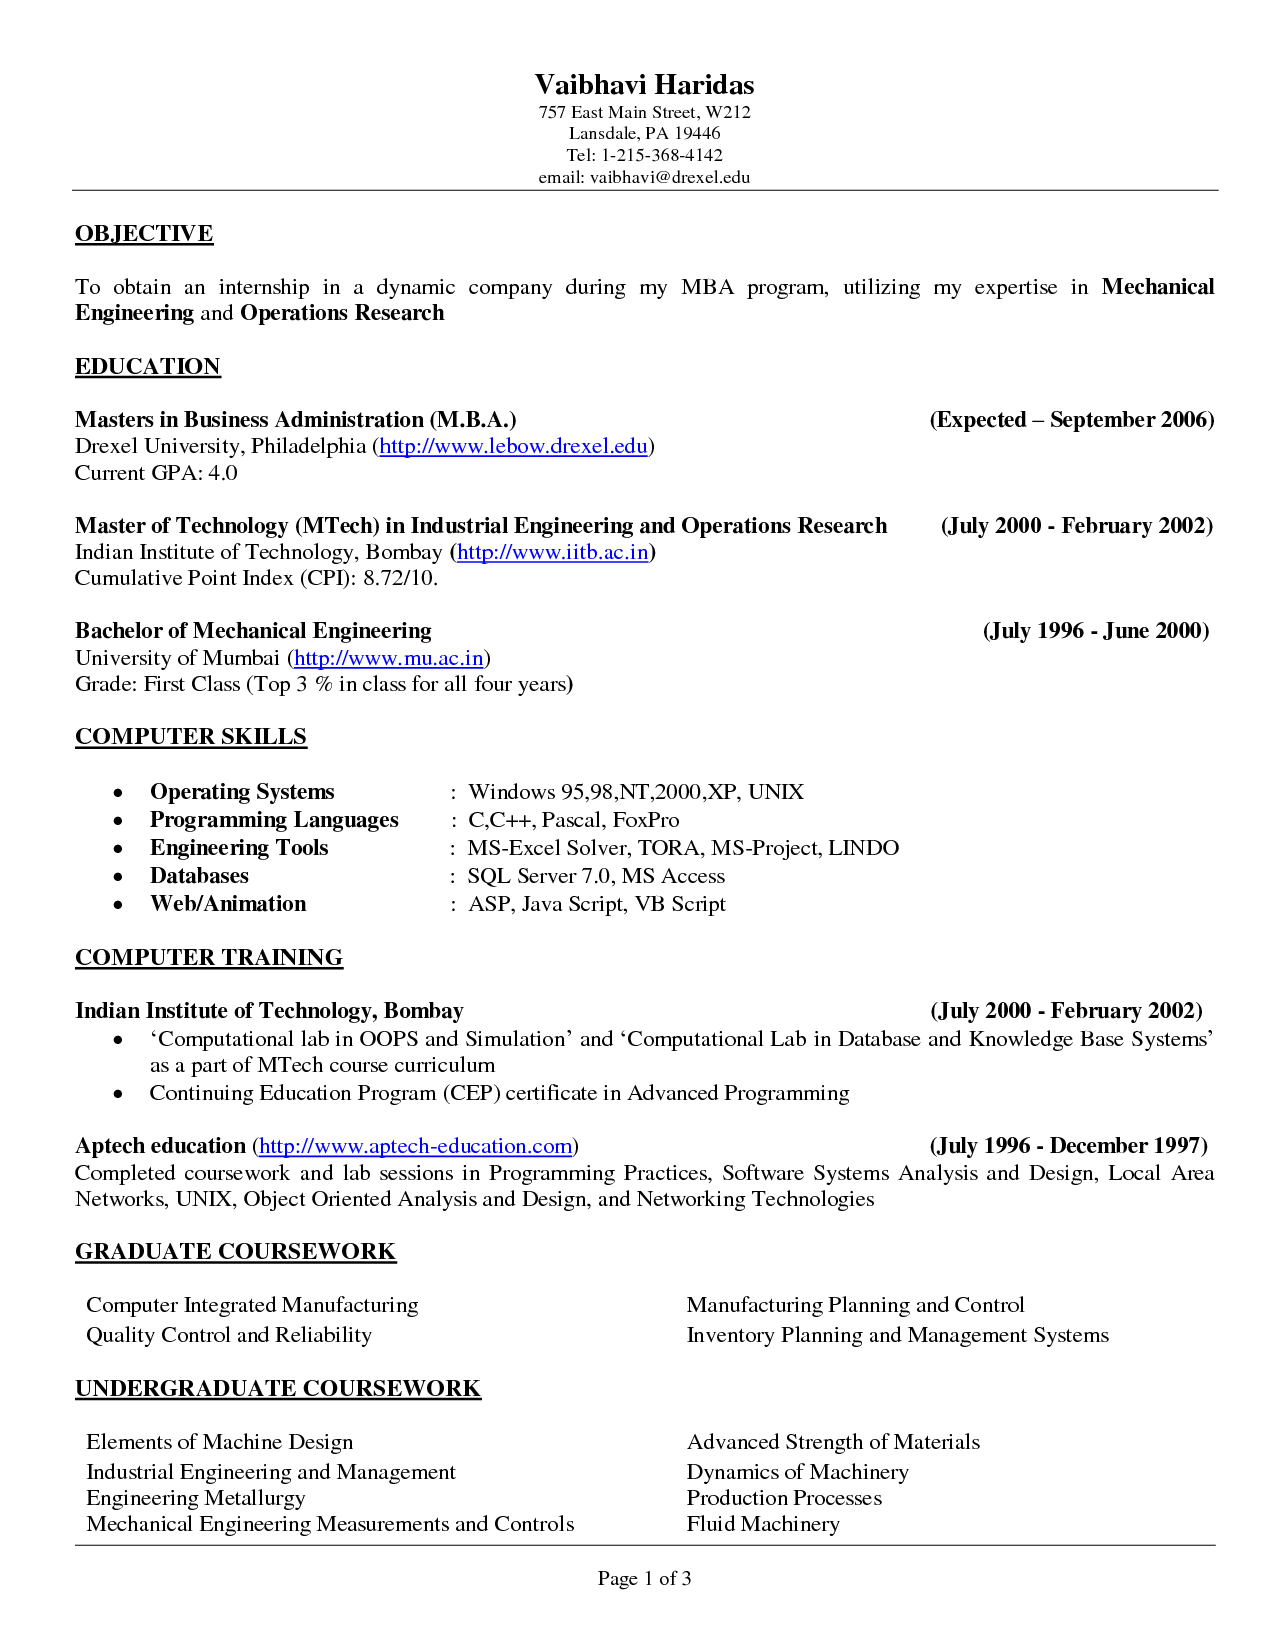 Resume Examples, Internship In Dynamic Company Objective Resume ...